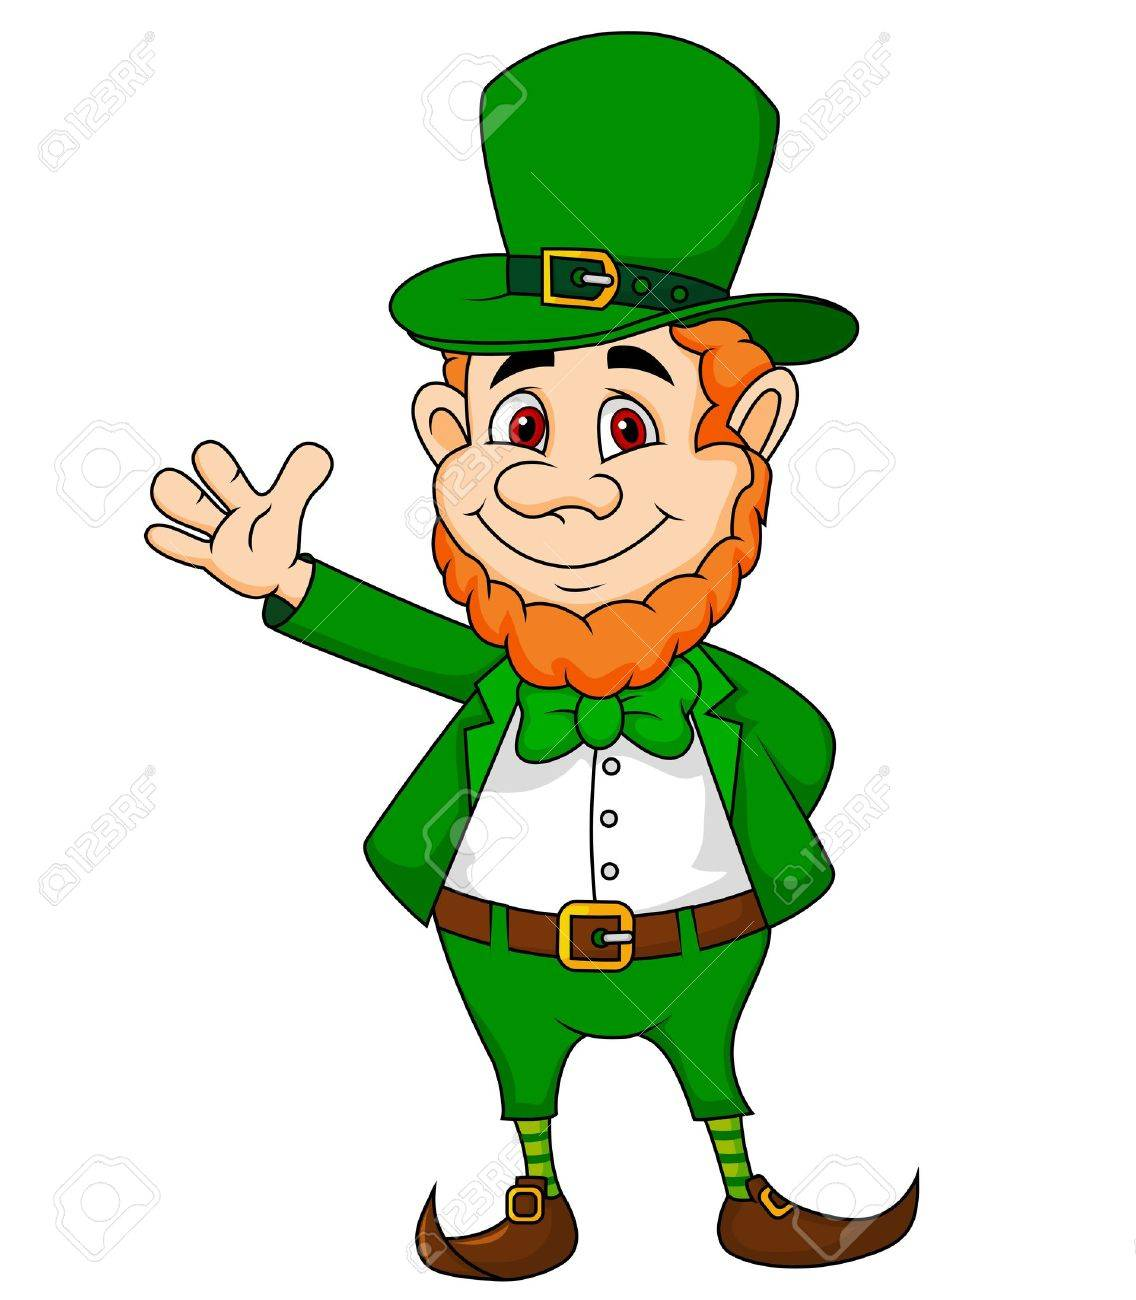 Uncategorized Leprechauns History leprechaun stock photos pictures royalty free images cartoon waving hand illustration